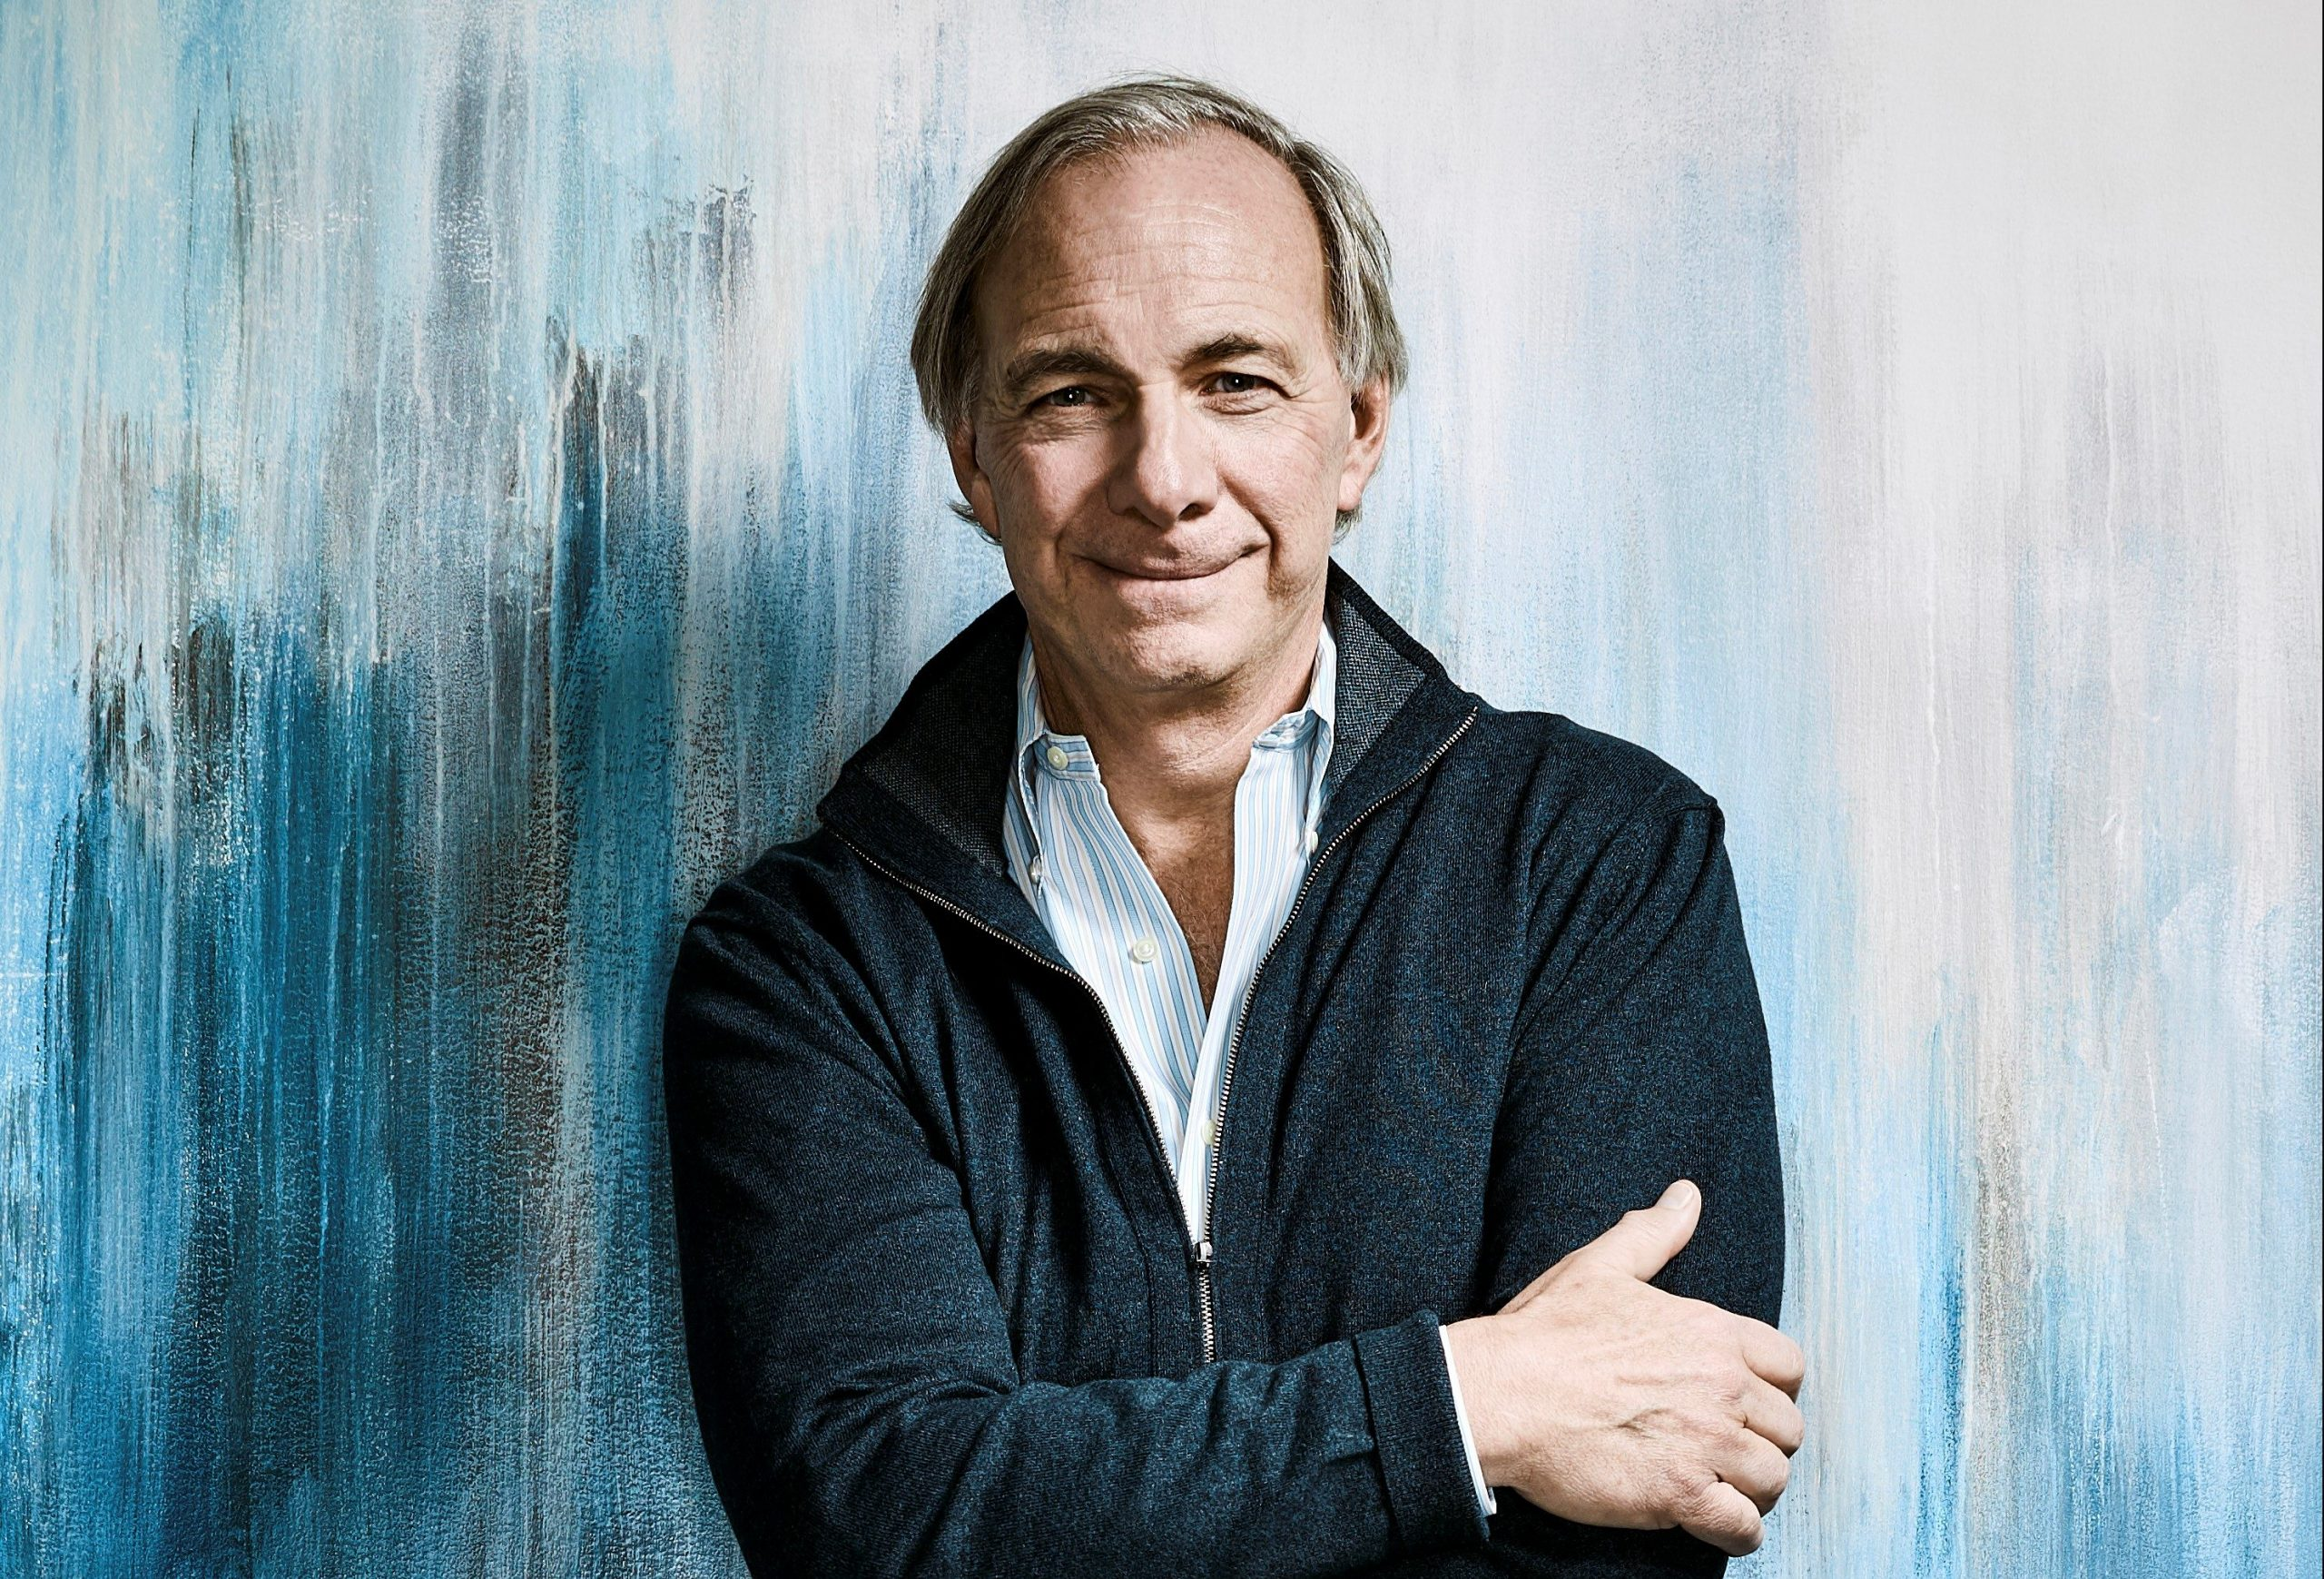 Hedge fund billionaire Ray Dalio to launch family office in Singapore